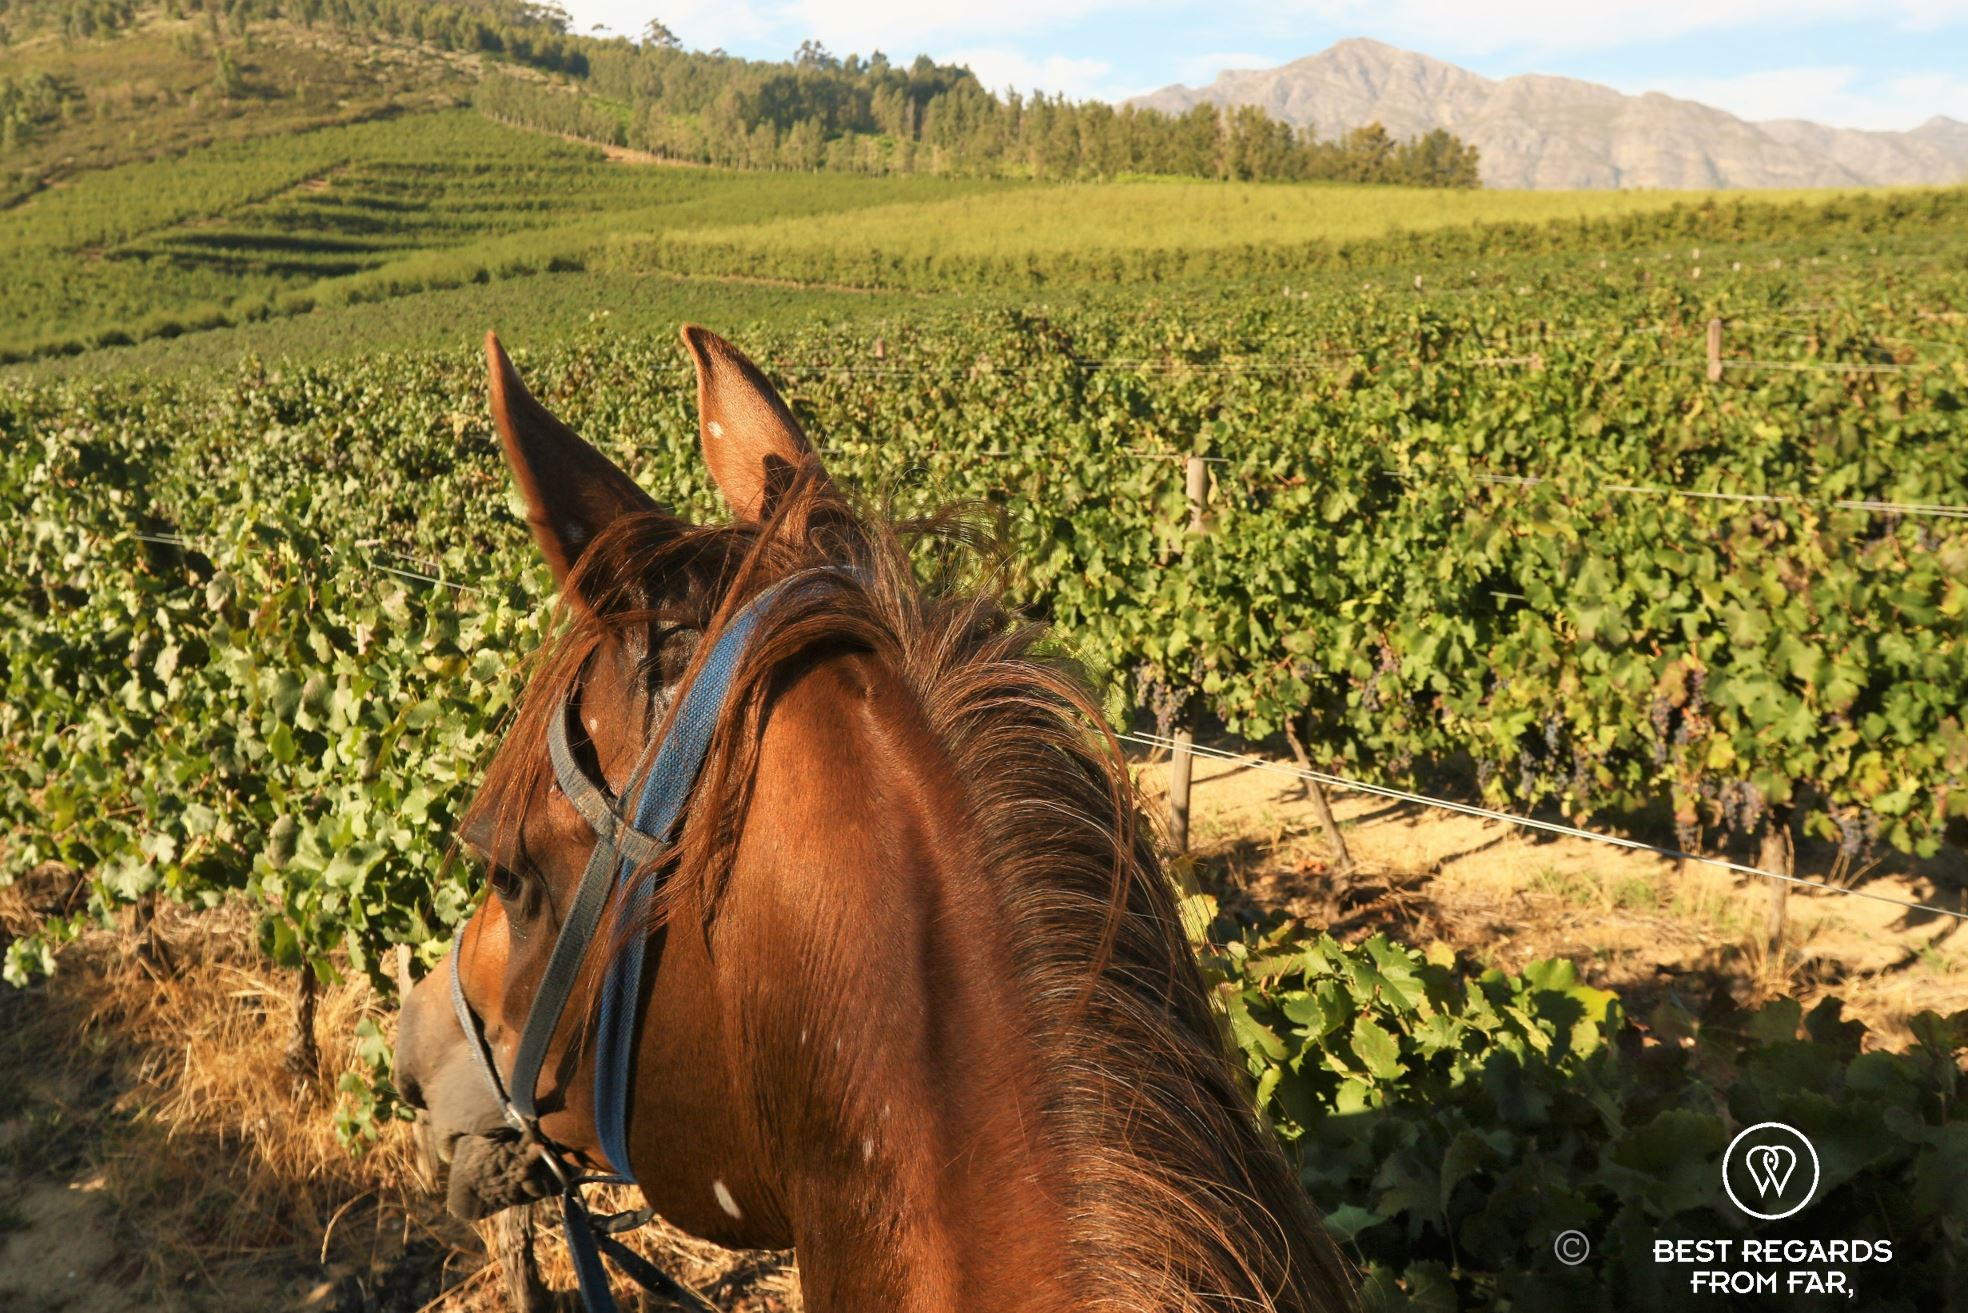 Head of a horse taken from the rider's position amongst the vineyards of Franschhoek